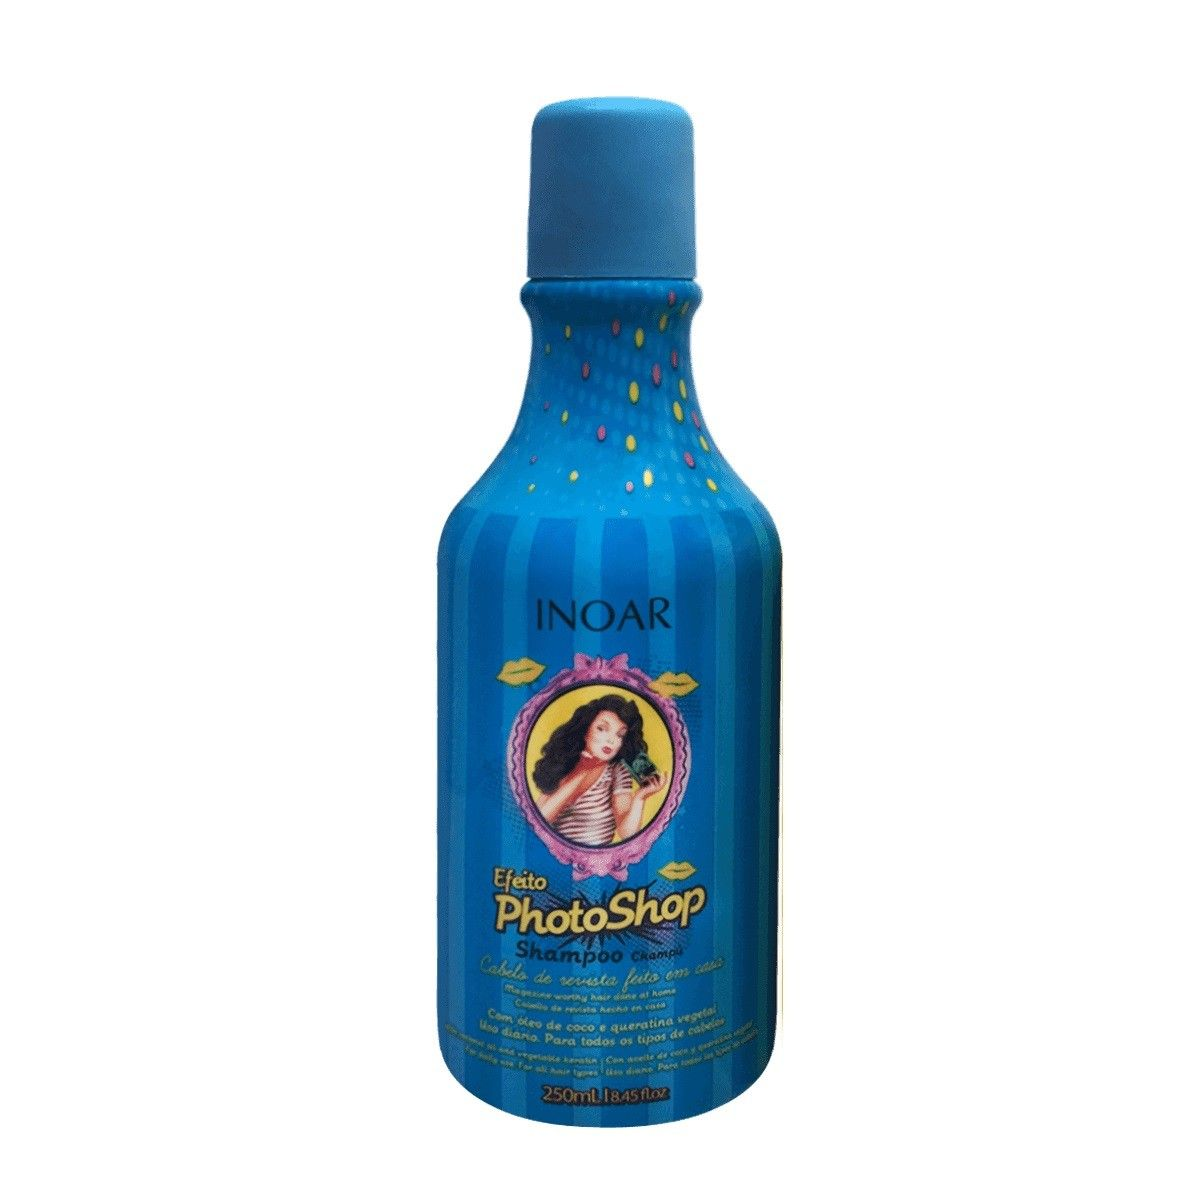 Shampoo Inoar Efeito PhotoShop - 250ml